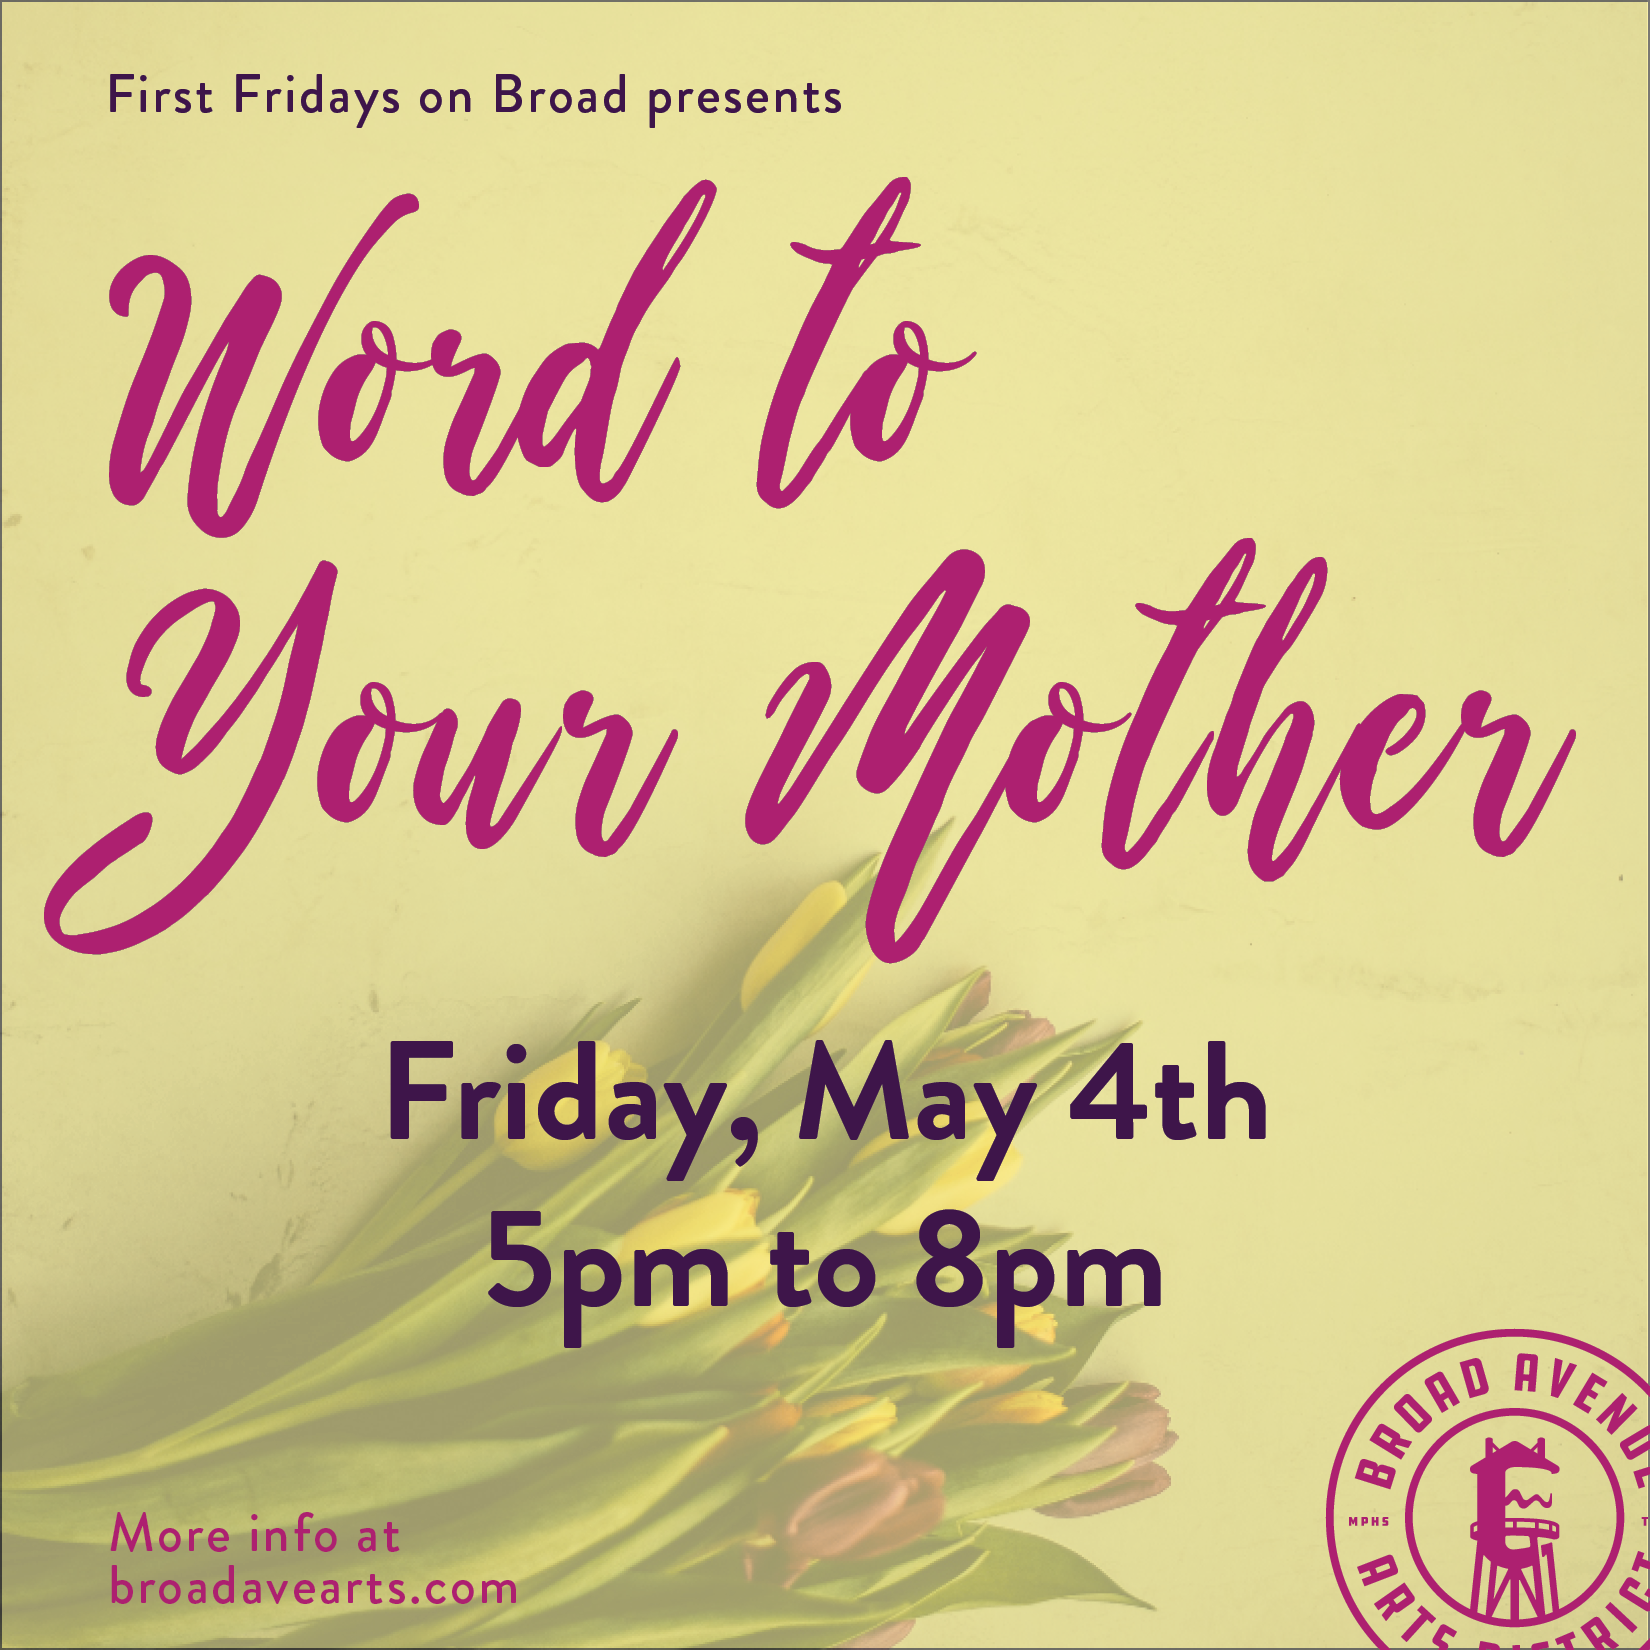 The shops of Broad Avenue will have gifts, goodies, and discounts to celebrate all the spectacular moms! Stop by 5:00 - 8:00 and feel the love! Participating shops:  Wiseacre Brewing Company   City & State   Falling Into Place   Merchants on Broad   T Clifton Art   Bingham & Broad   Mbabazi House of Style  more to come!